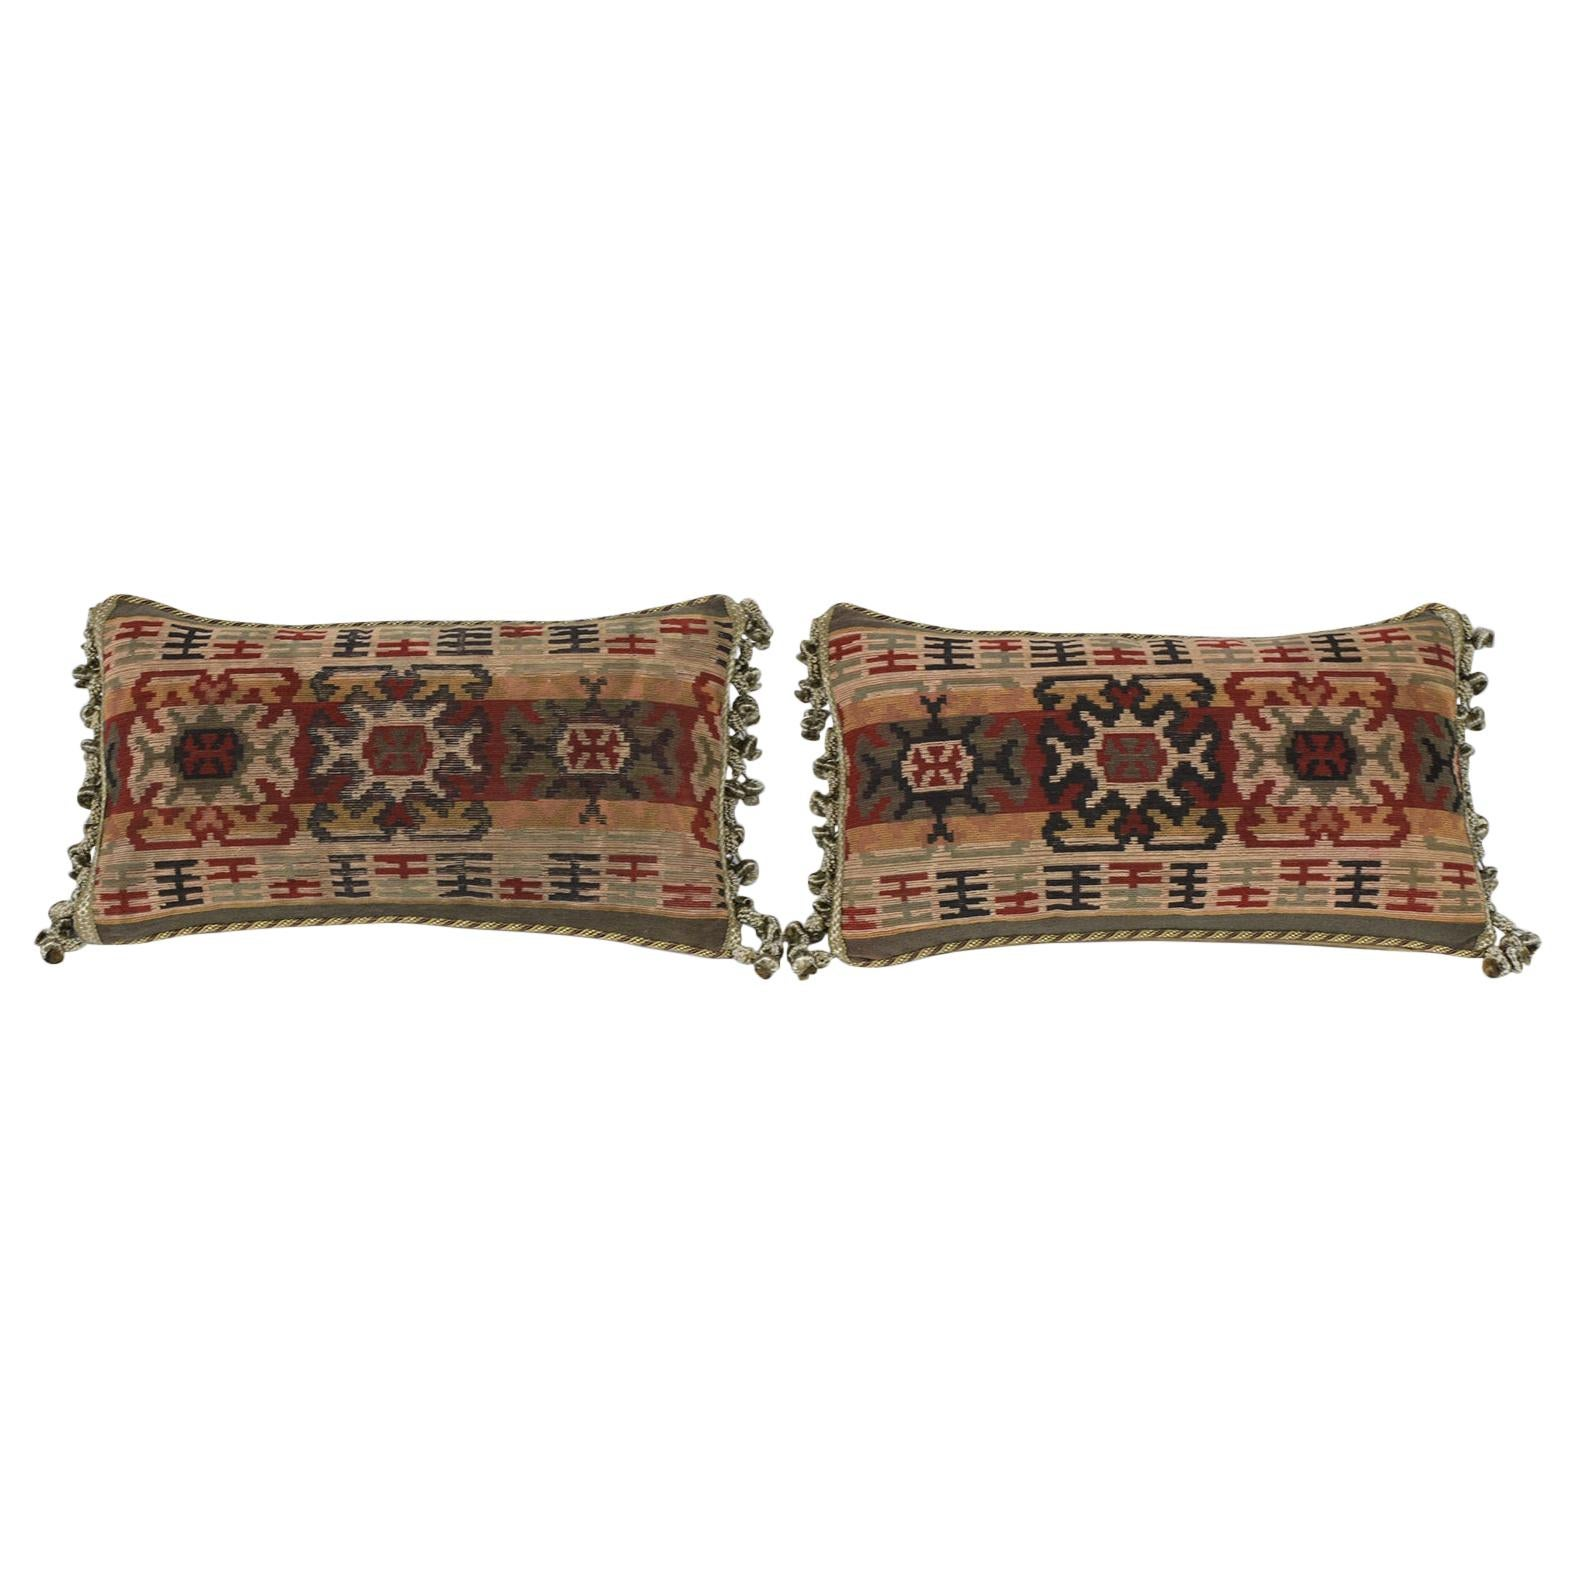 Pair of French Throw Pillows